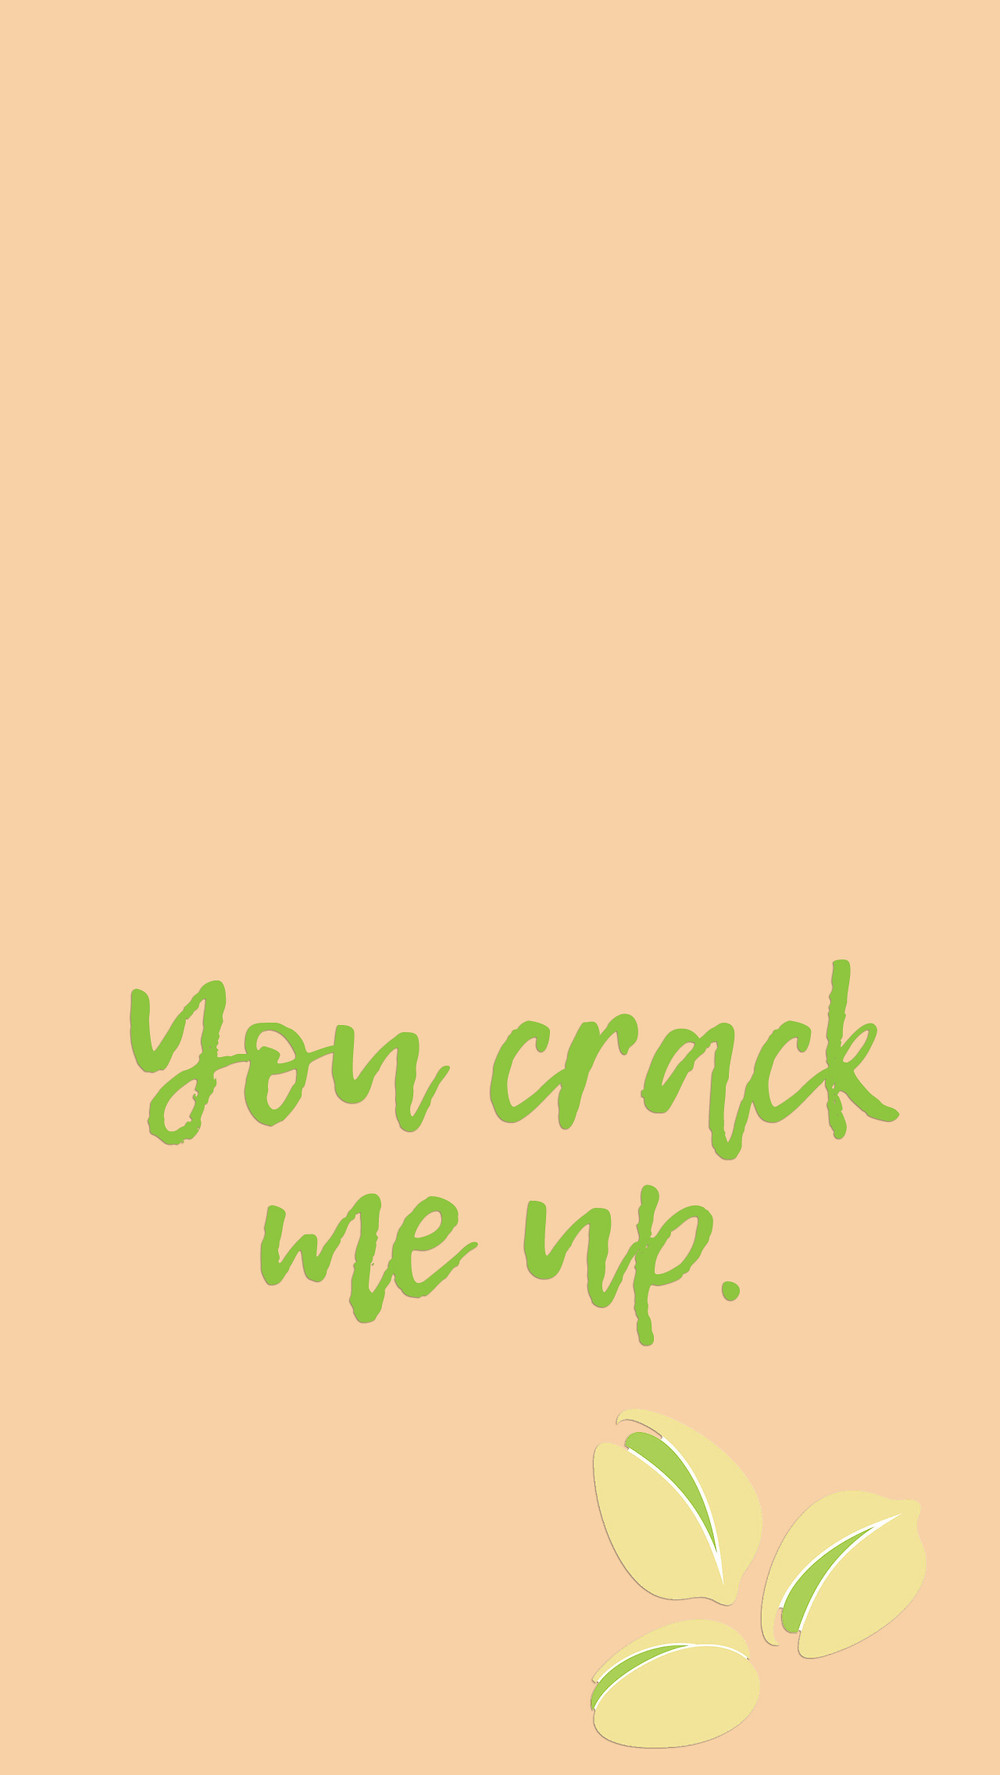 Pistachio - you crack me up tech phone and desktop background wallpaper free download